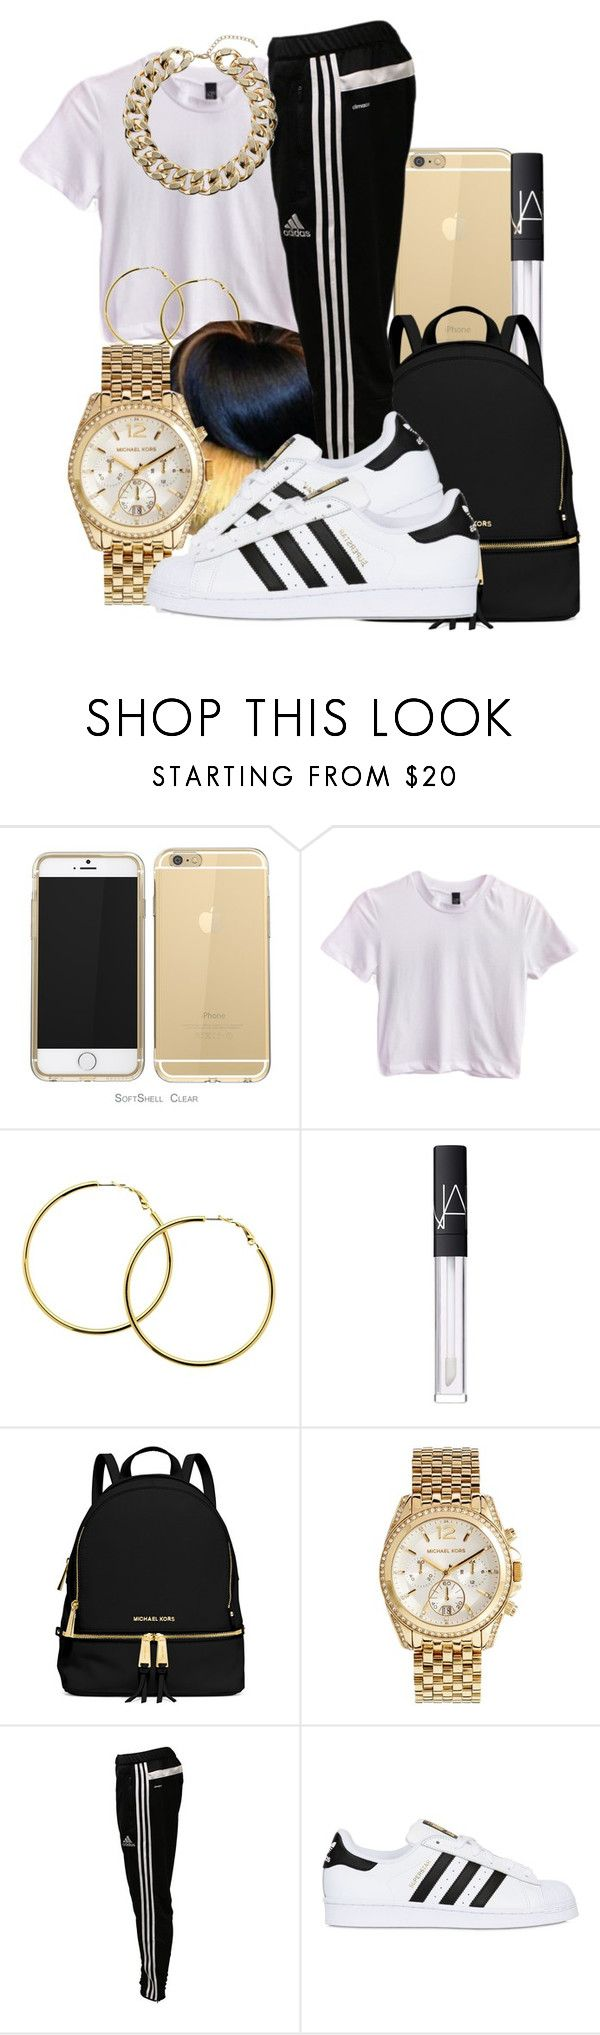 """I M A N I "" by pimpcessjayyy ❤ liked on Polyvore featuring Melissa Odabash, NARS Cosmetics, Identity, MICHAEL Michael Kors, Michael Kors, adidas, adidas Originals and Topshop"